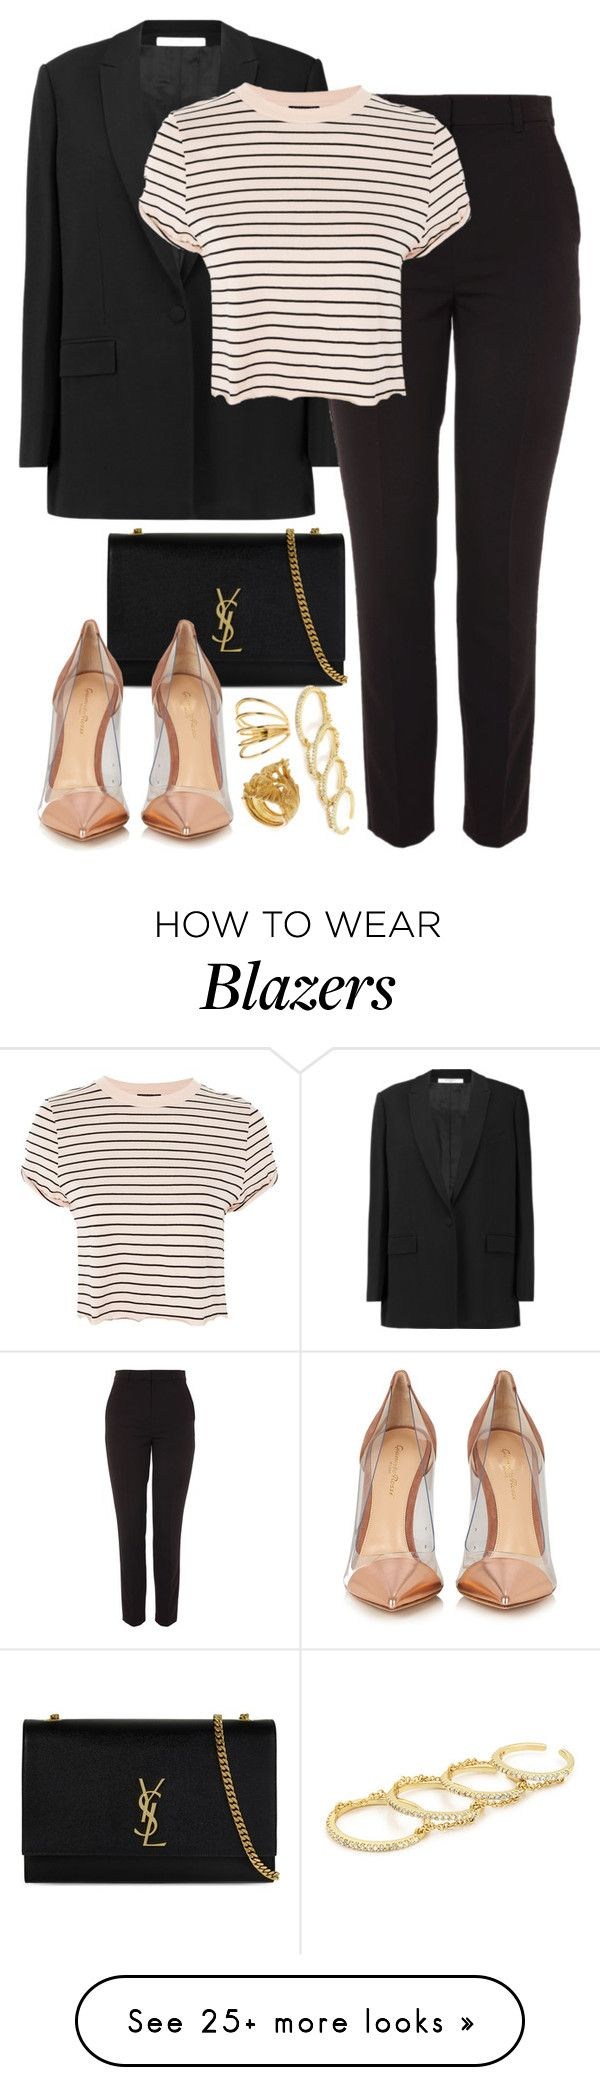 """Givenchy x Yves Saint Laurent"" by muddychip-797 on Polyvore featuring Givenchy, Topshop, Yves Saint Laurent, Gianvito Rossi, Vanzi, Gorjana, Fallon, party, business and saintlaurent"